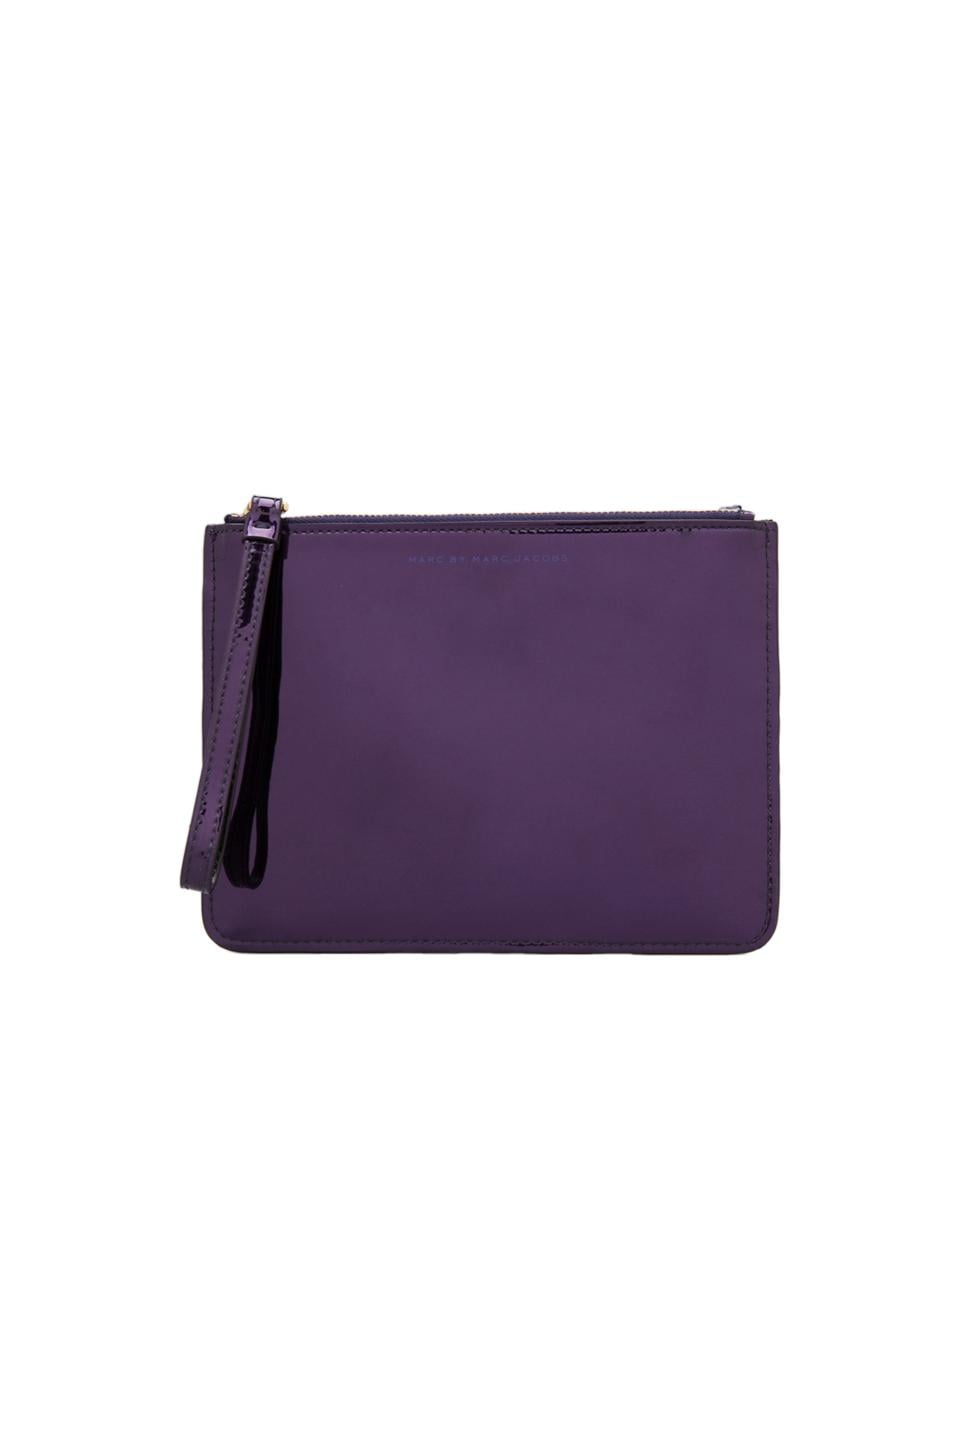 Marc by Marc Jacobs Techno Wristlet Zip Pouch in Purple Holographic